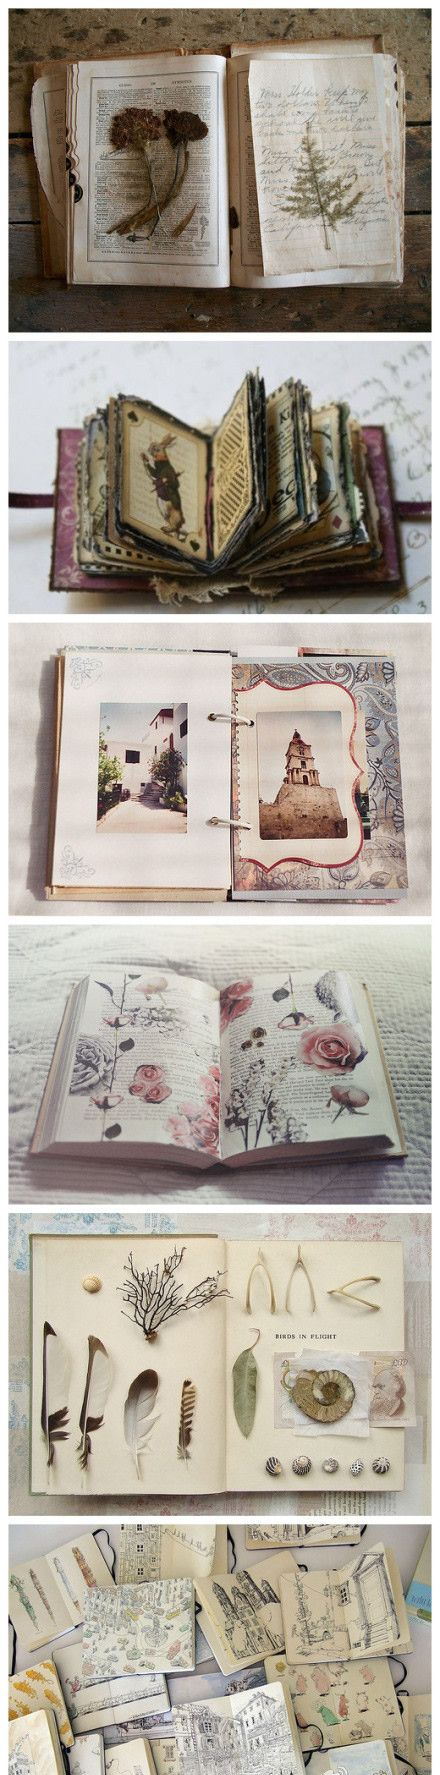 journals Lovely sketch book inspiration